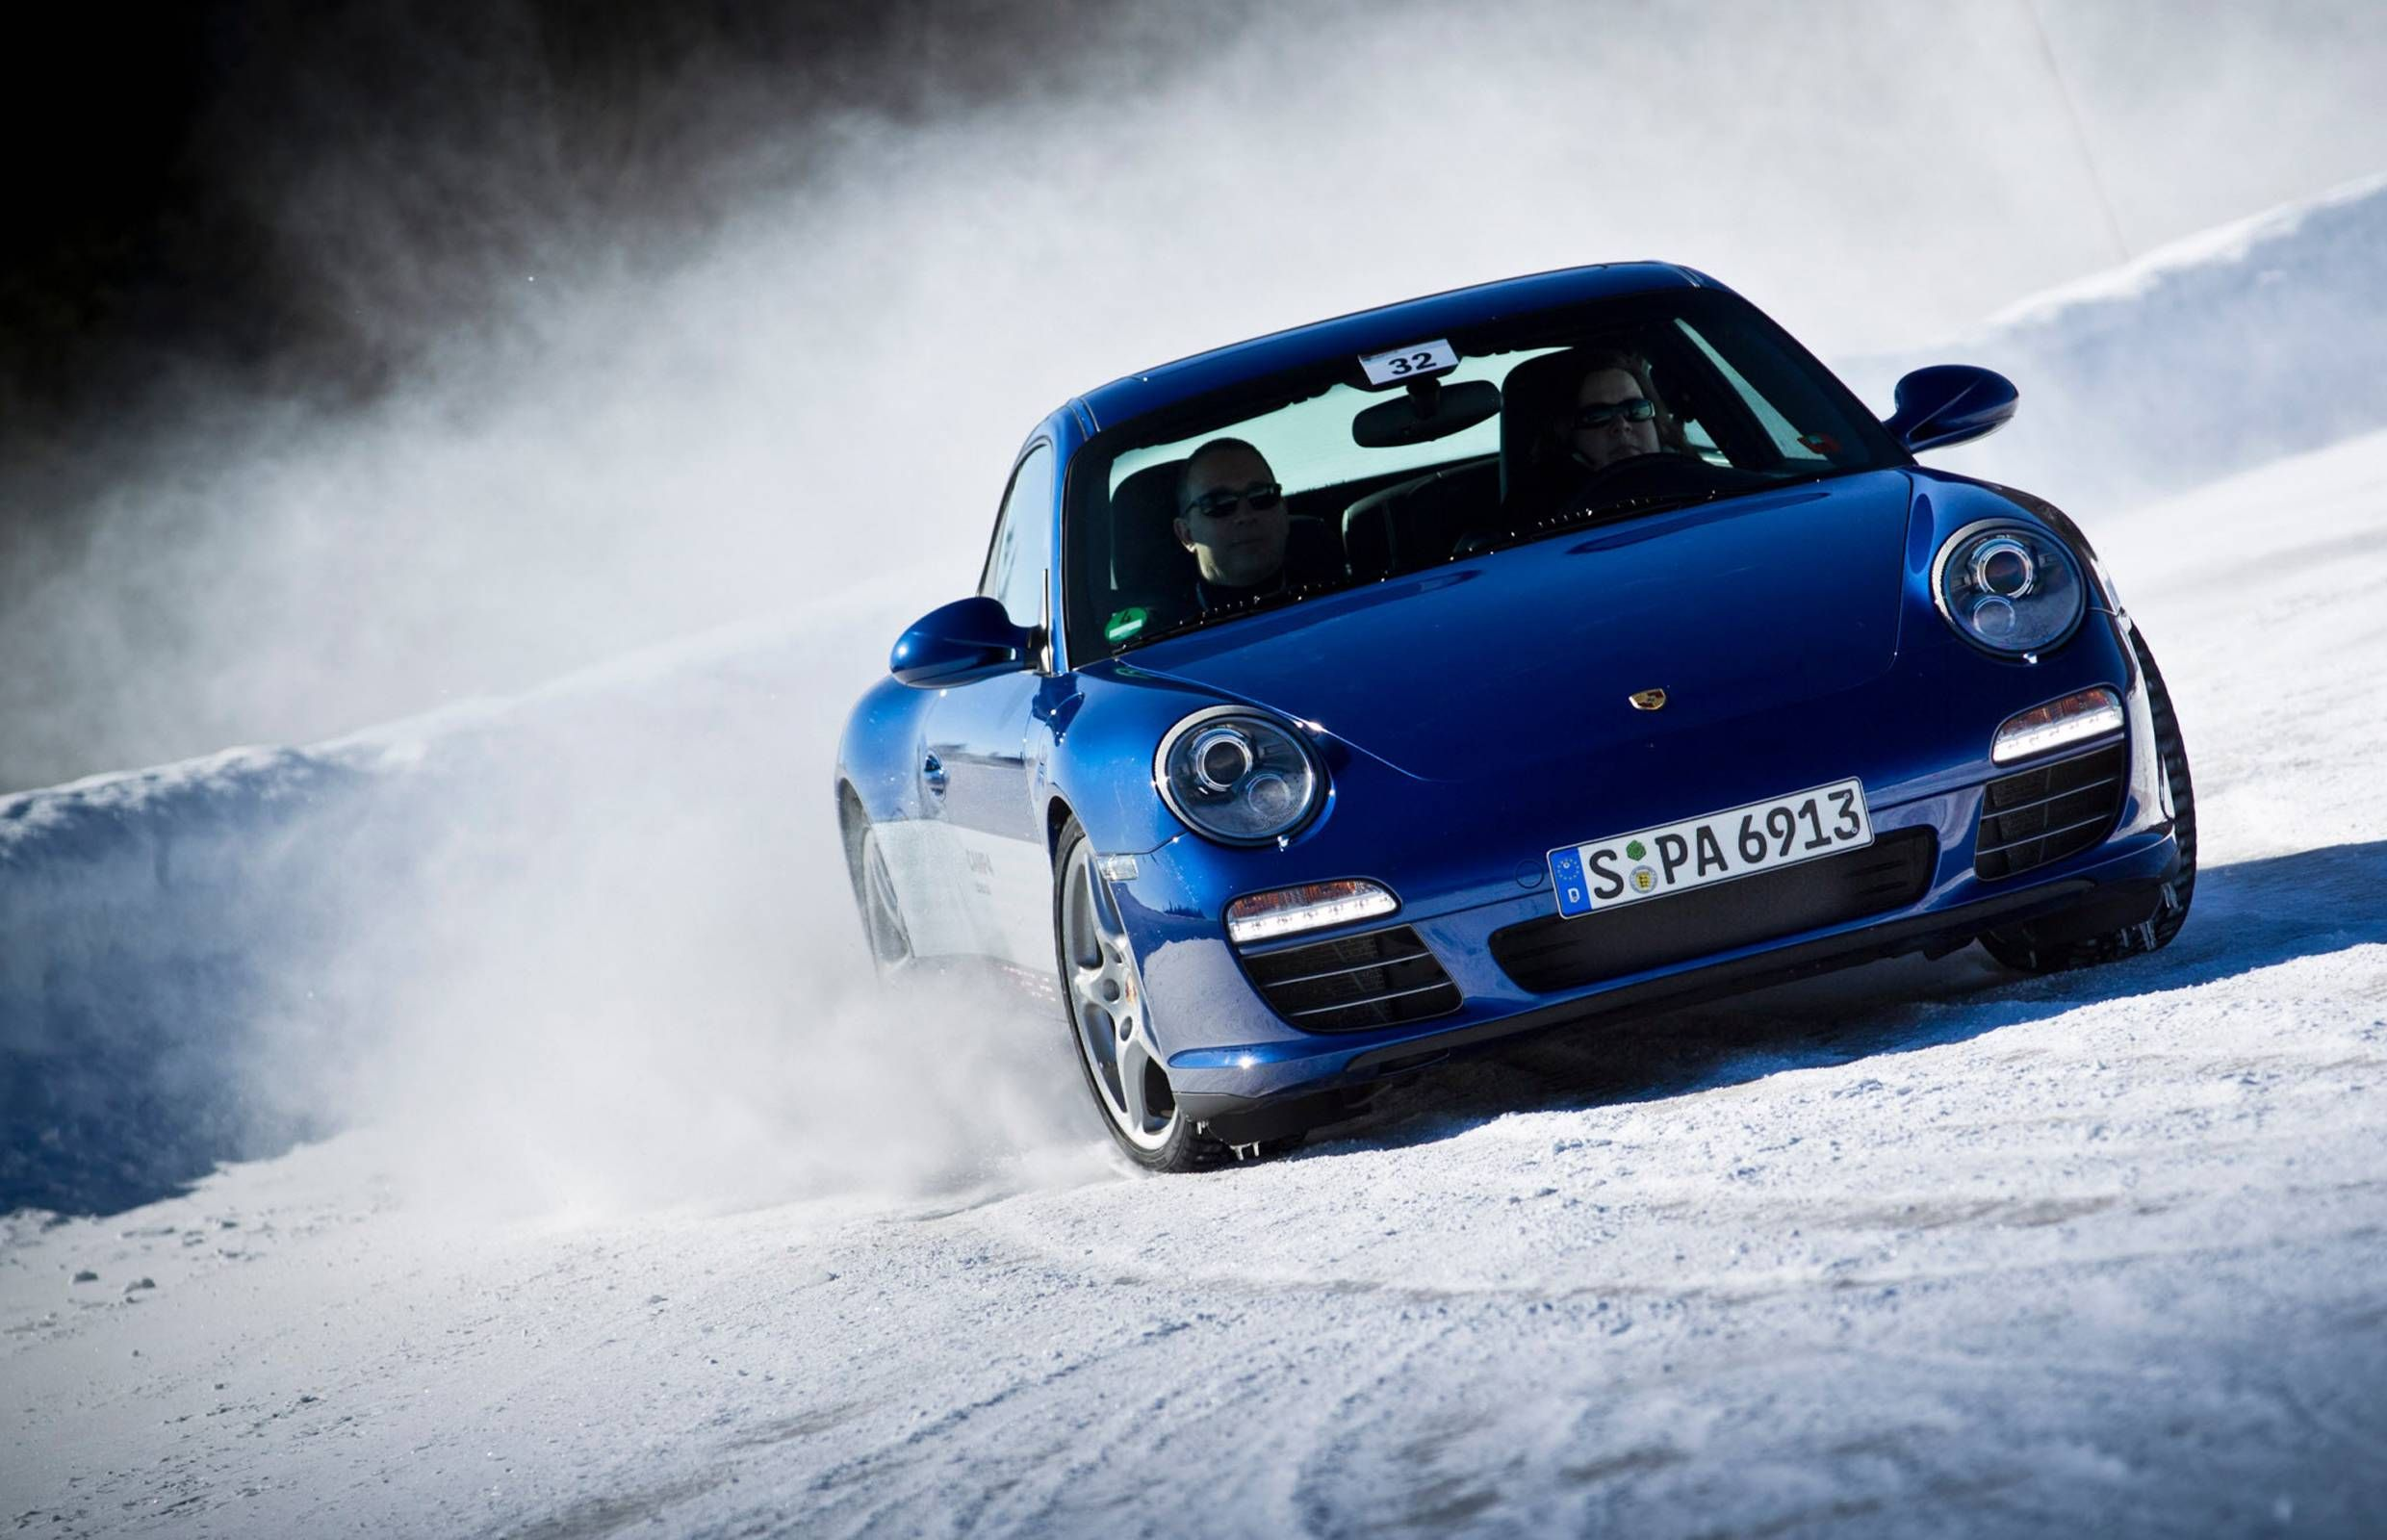 Five Winter Driving Lessons From An Icy Racetrack Winter Car Winter Tyres Car